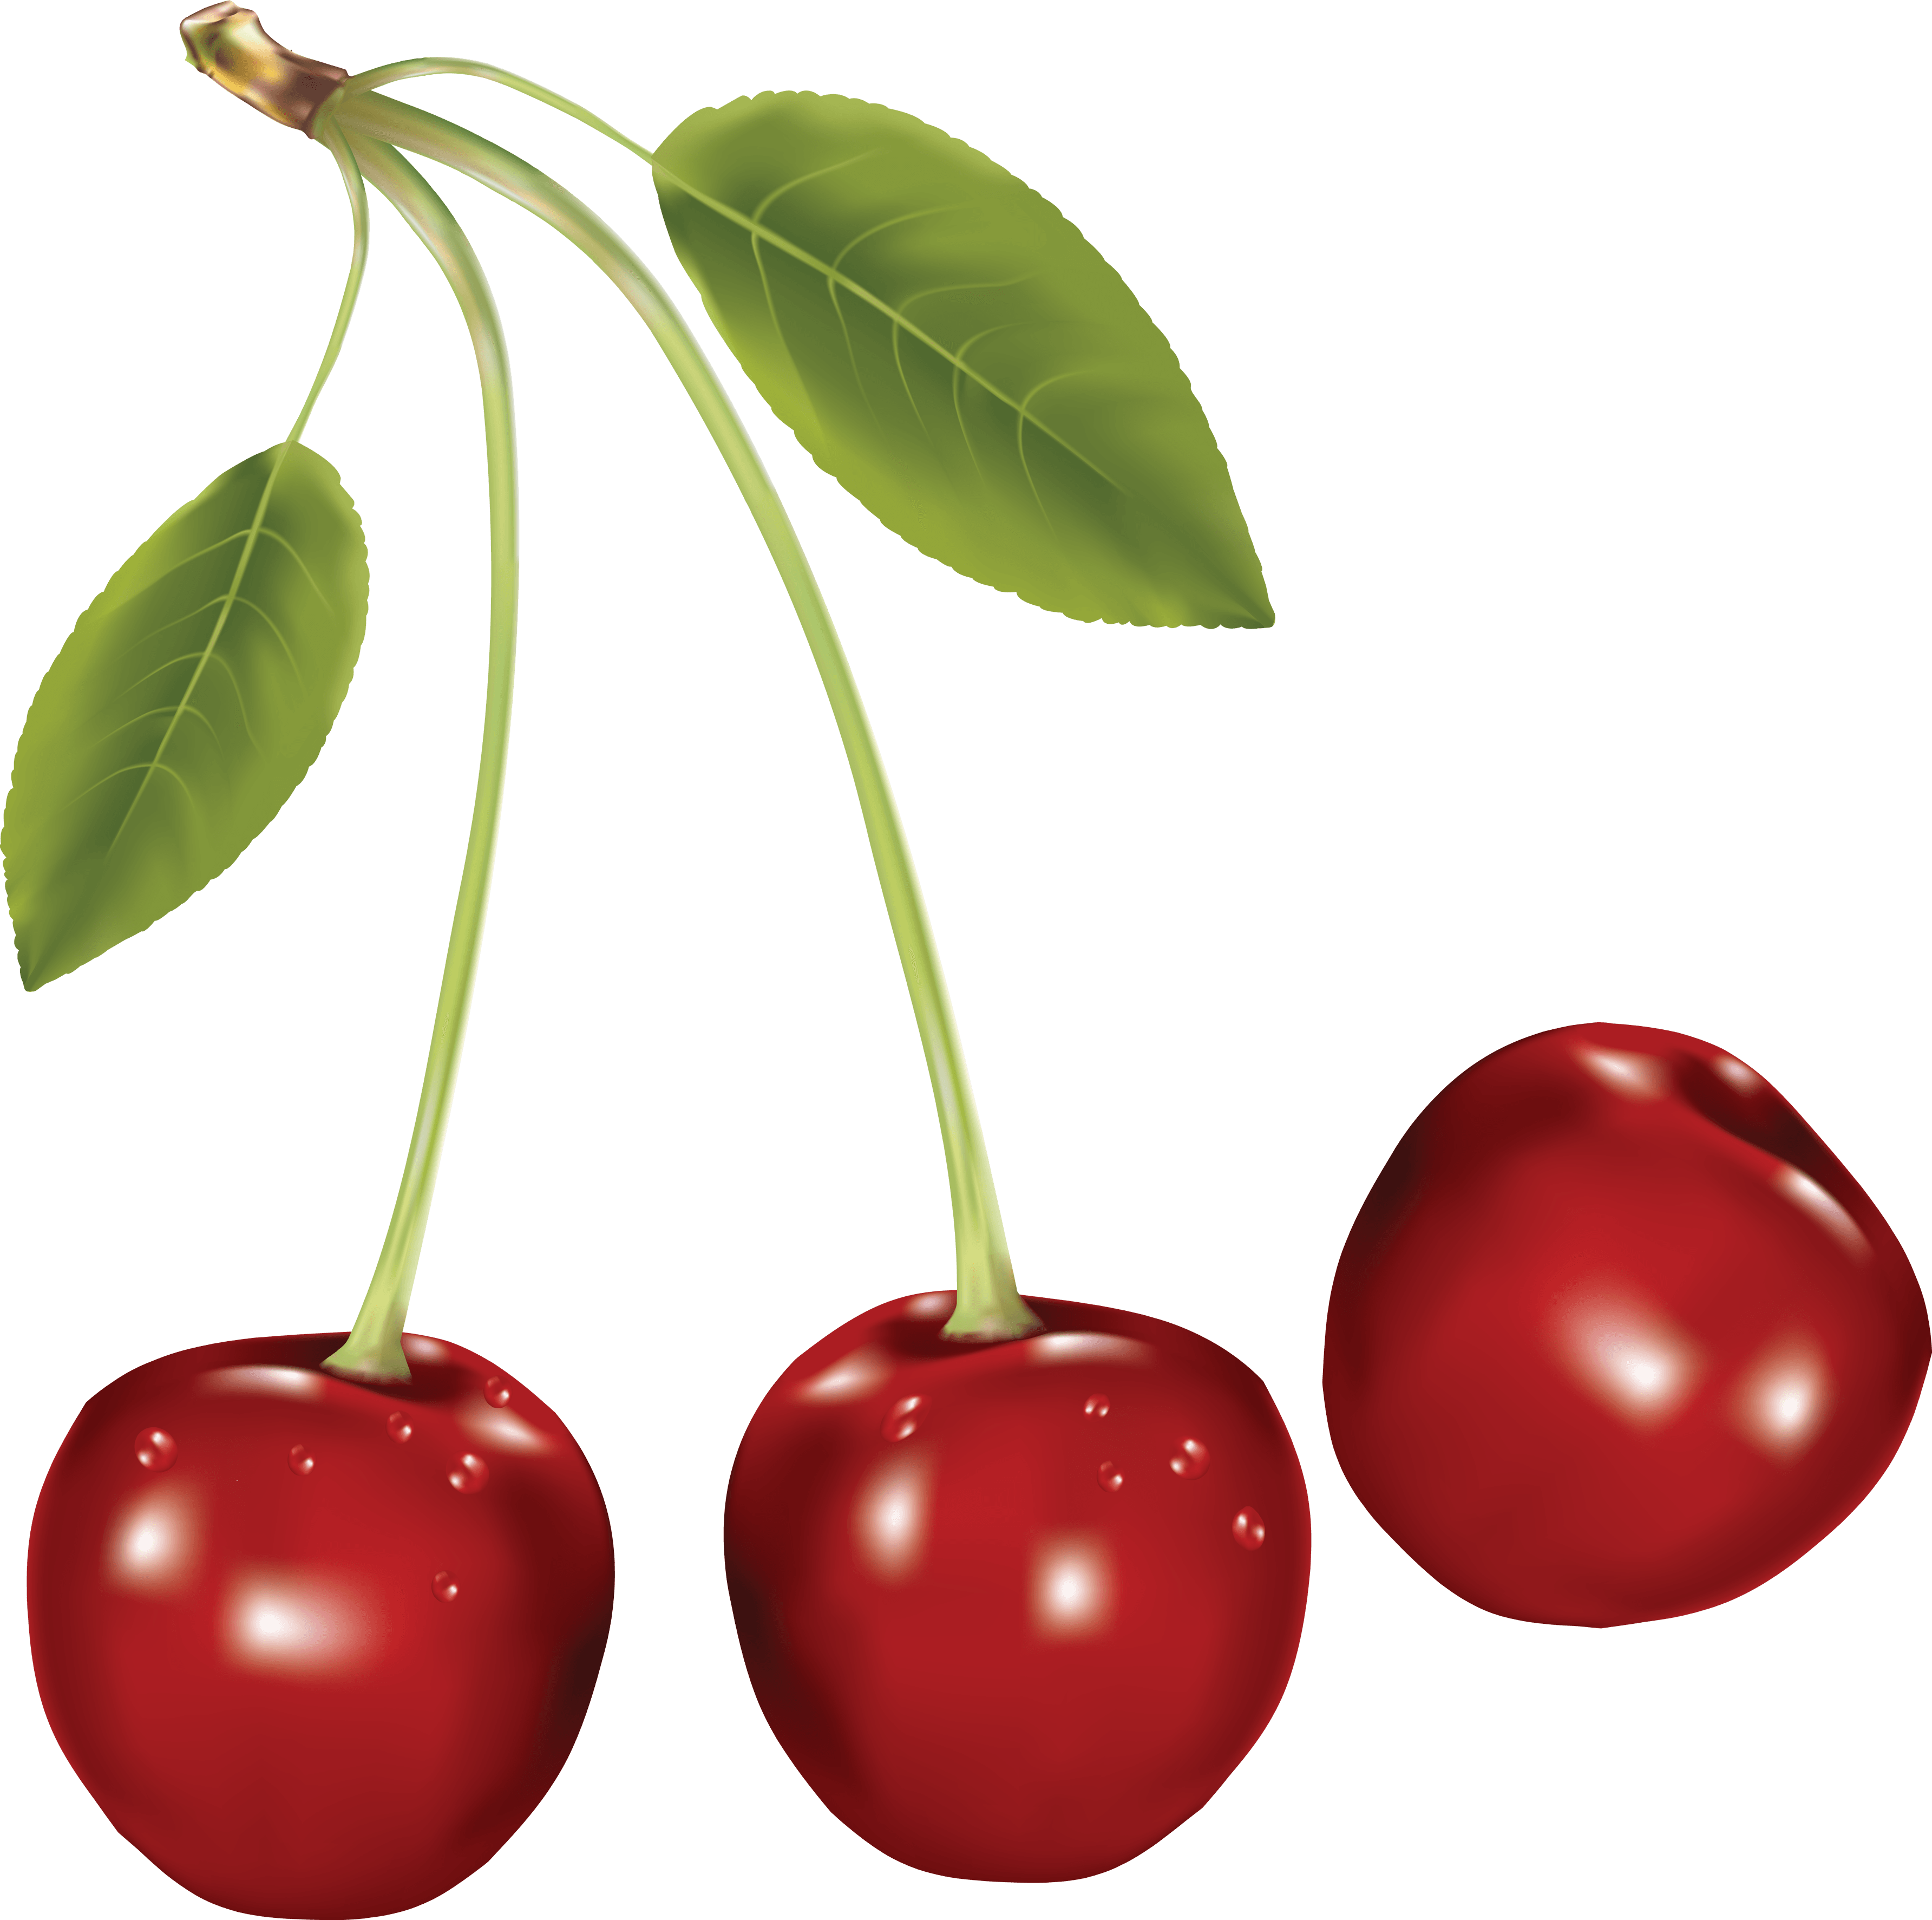 Cherries Png Image PNG Image